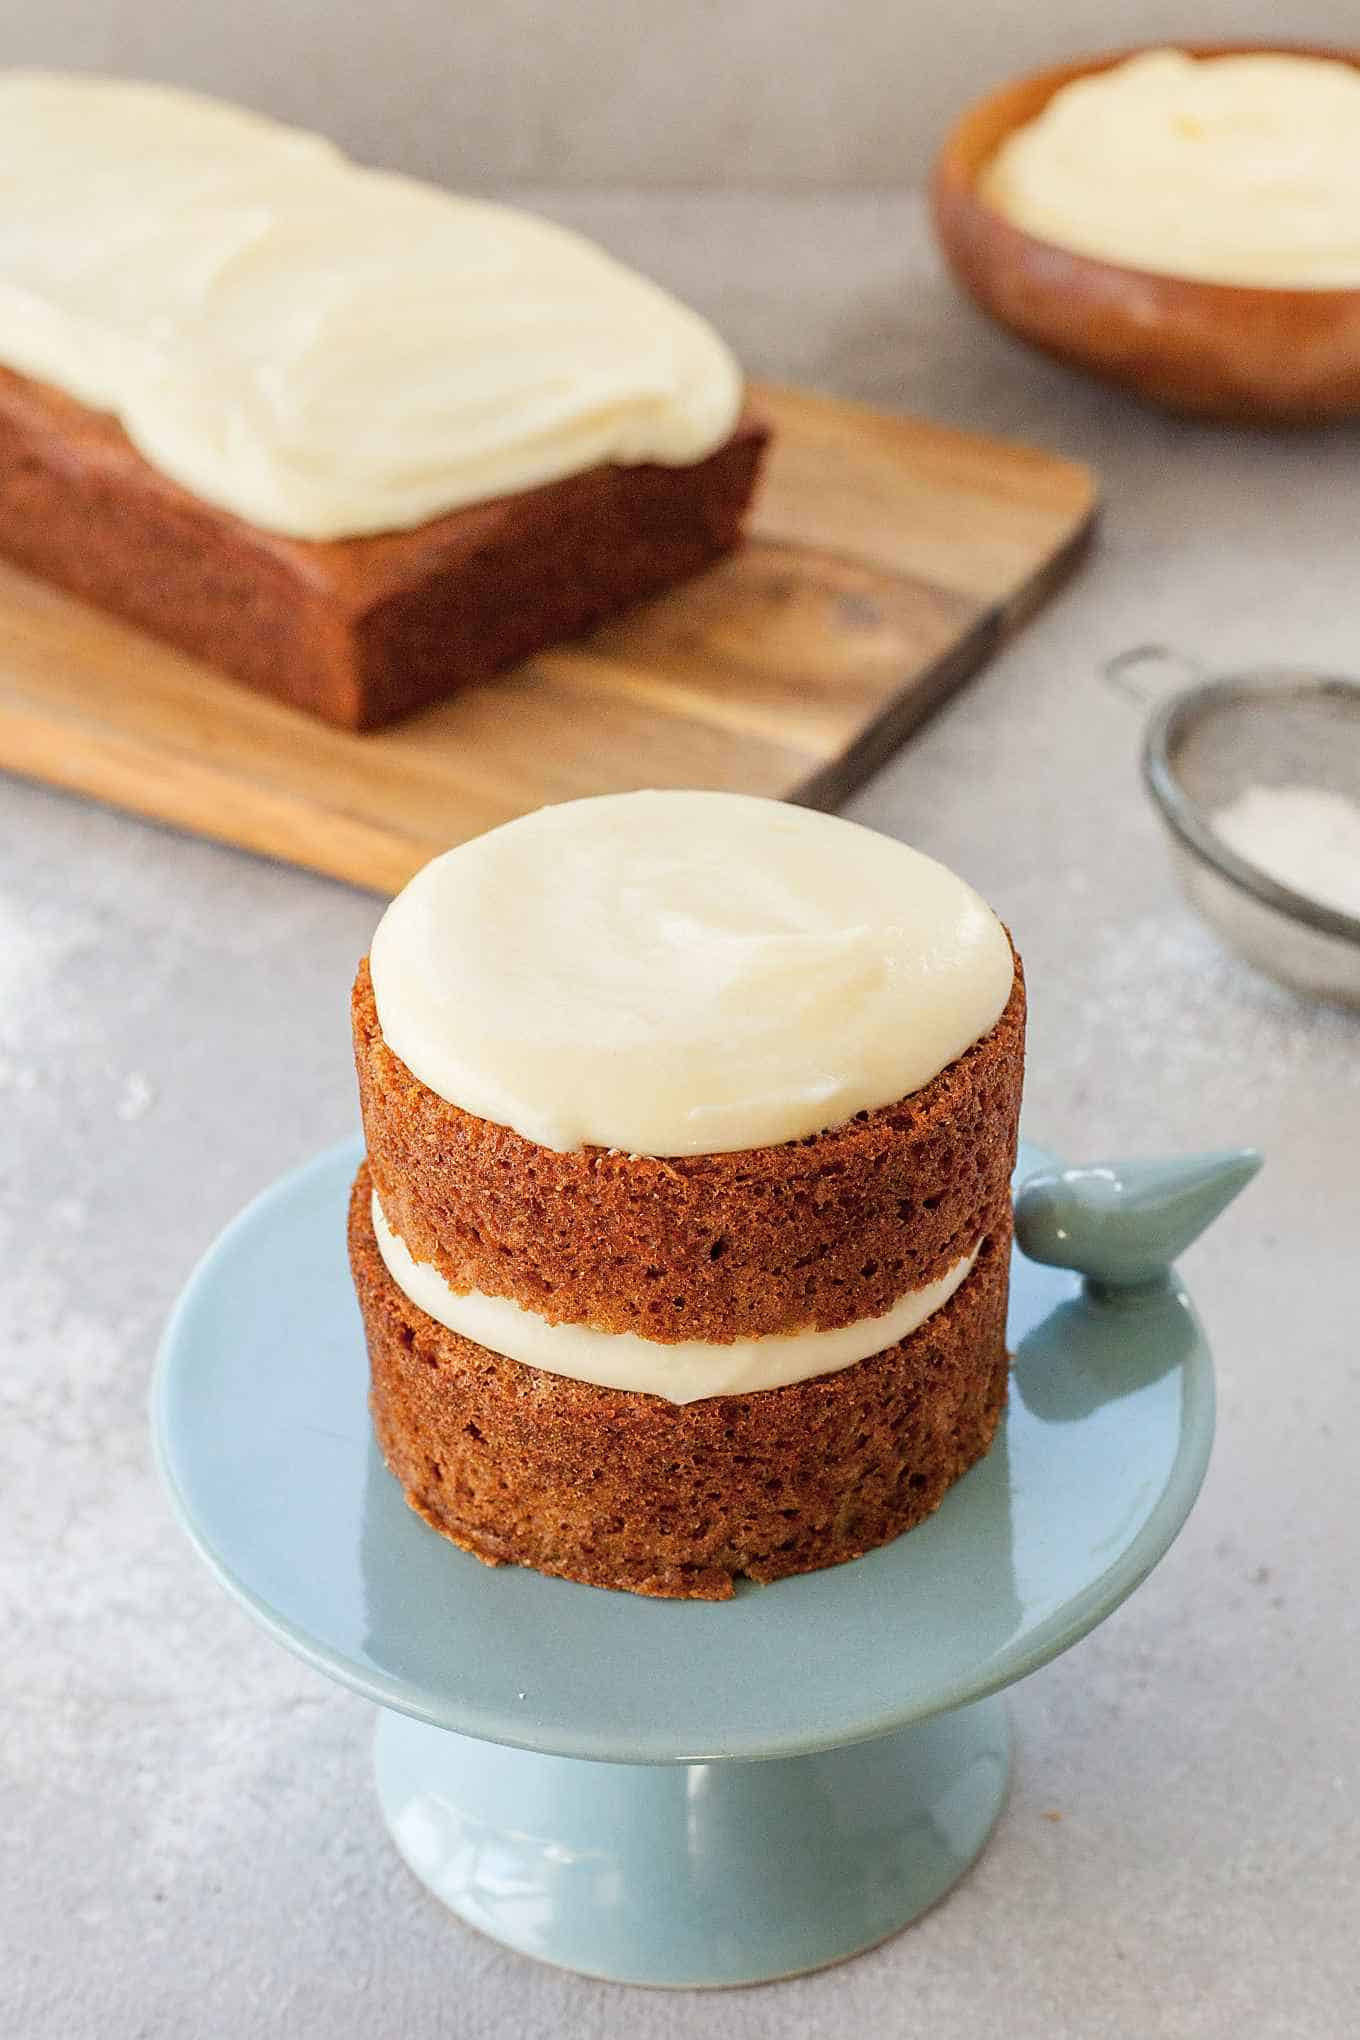 image of applesauce cake on blue cake stand with applesauce cake on wooden board